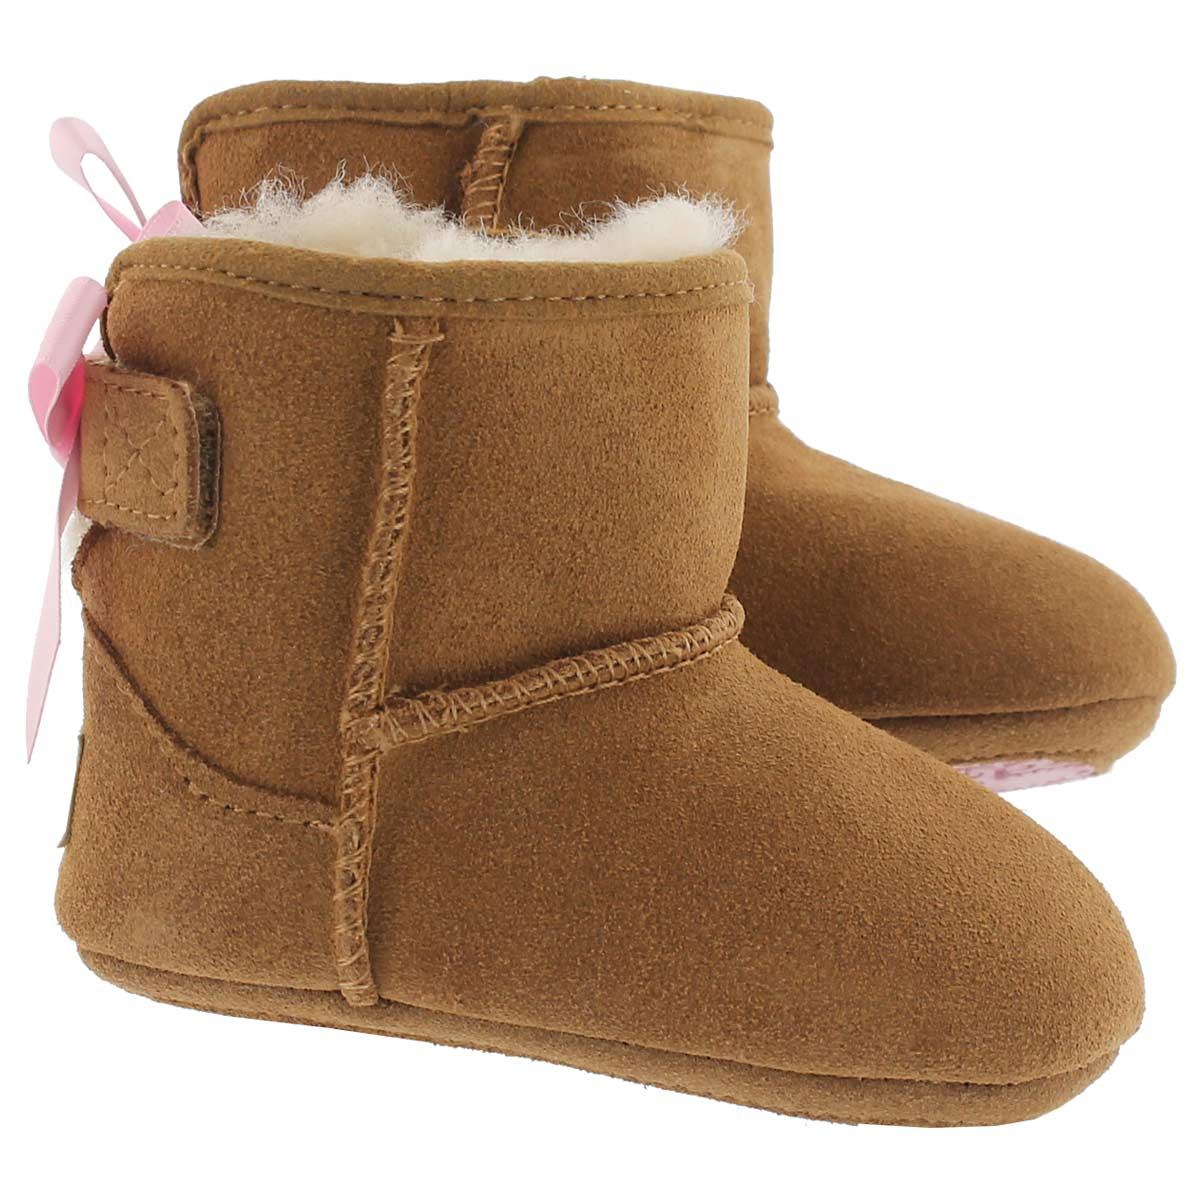 Inf Jesse Bow chestnut sheepskin boot